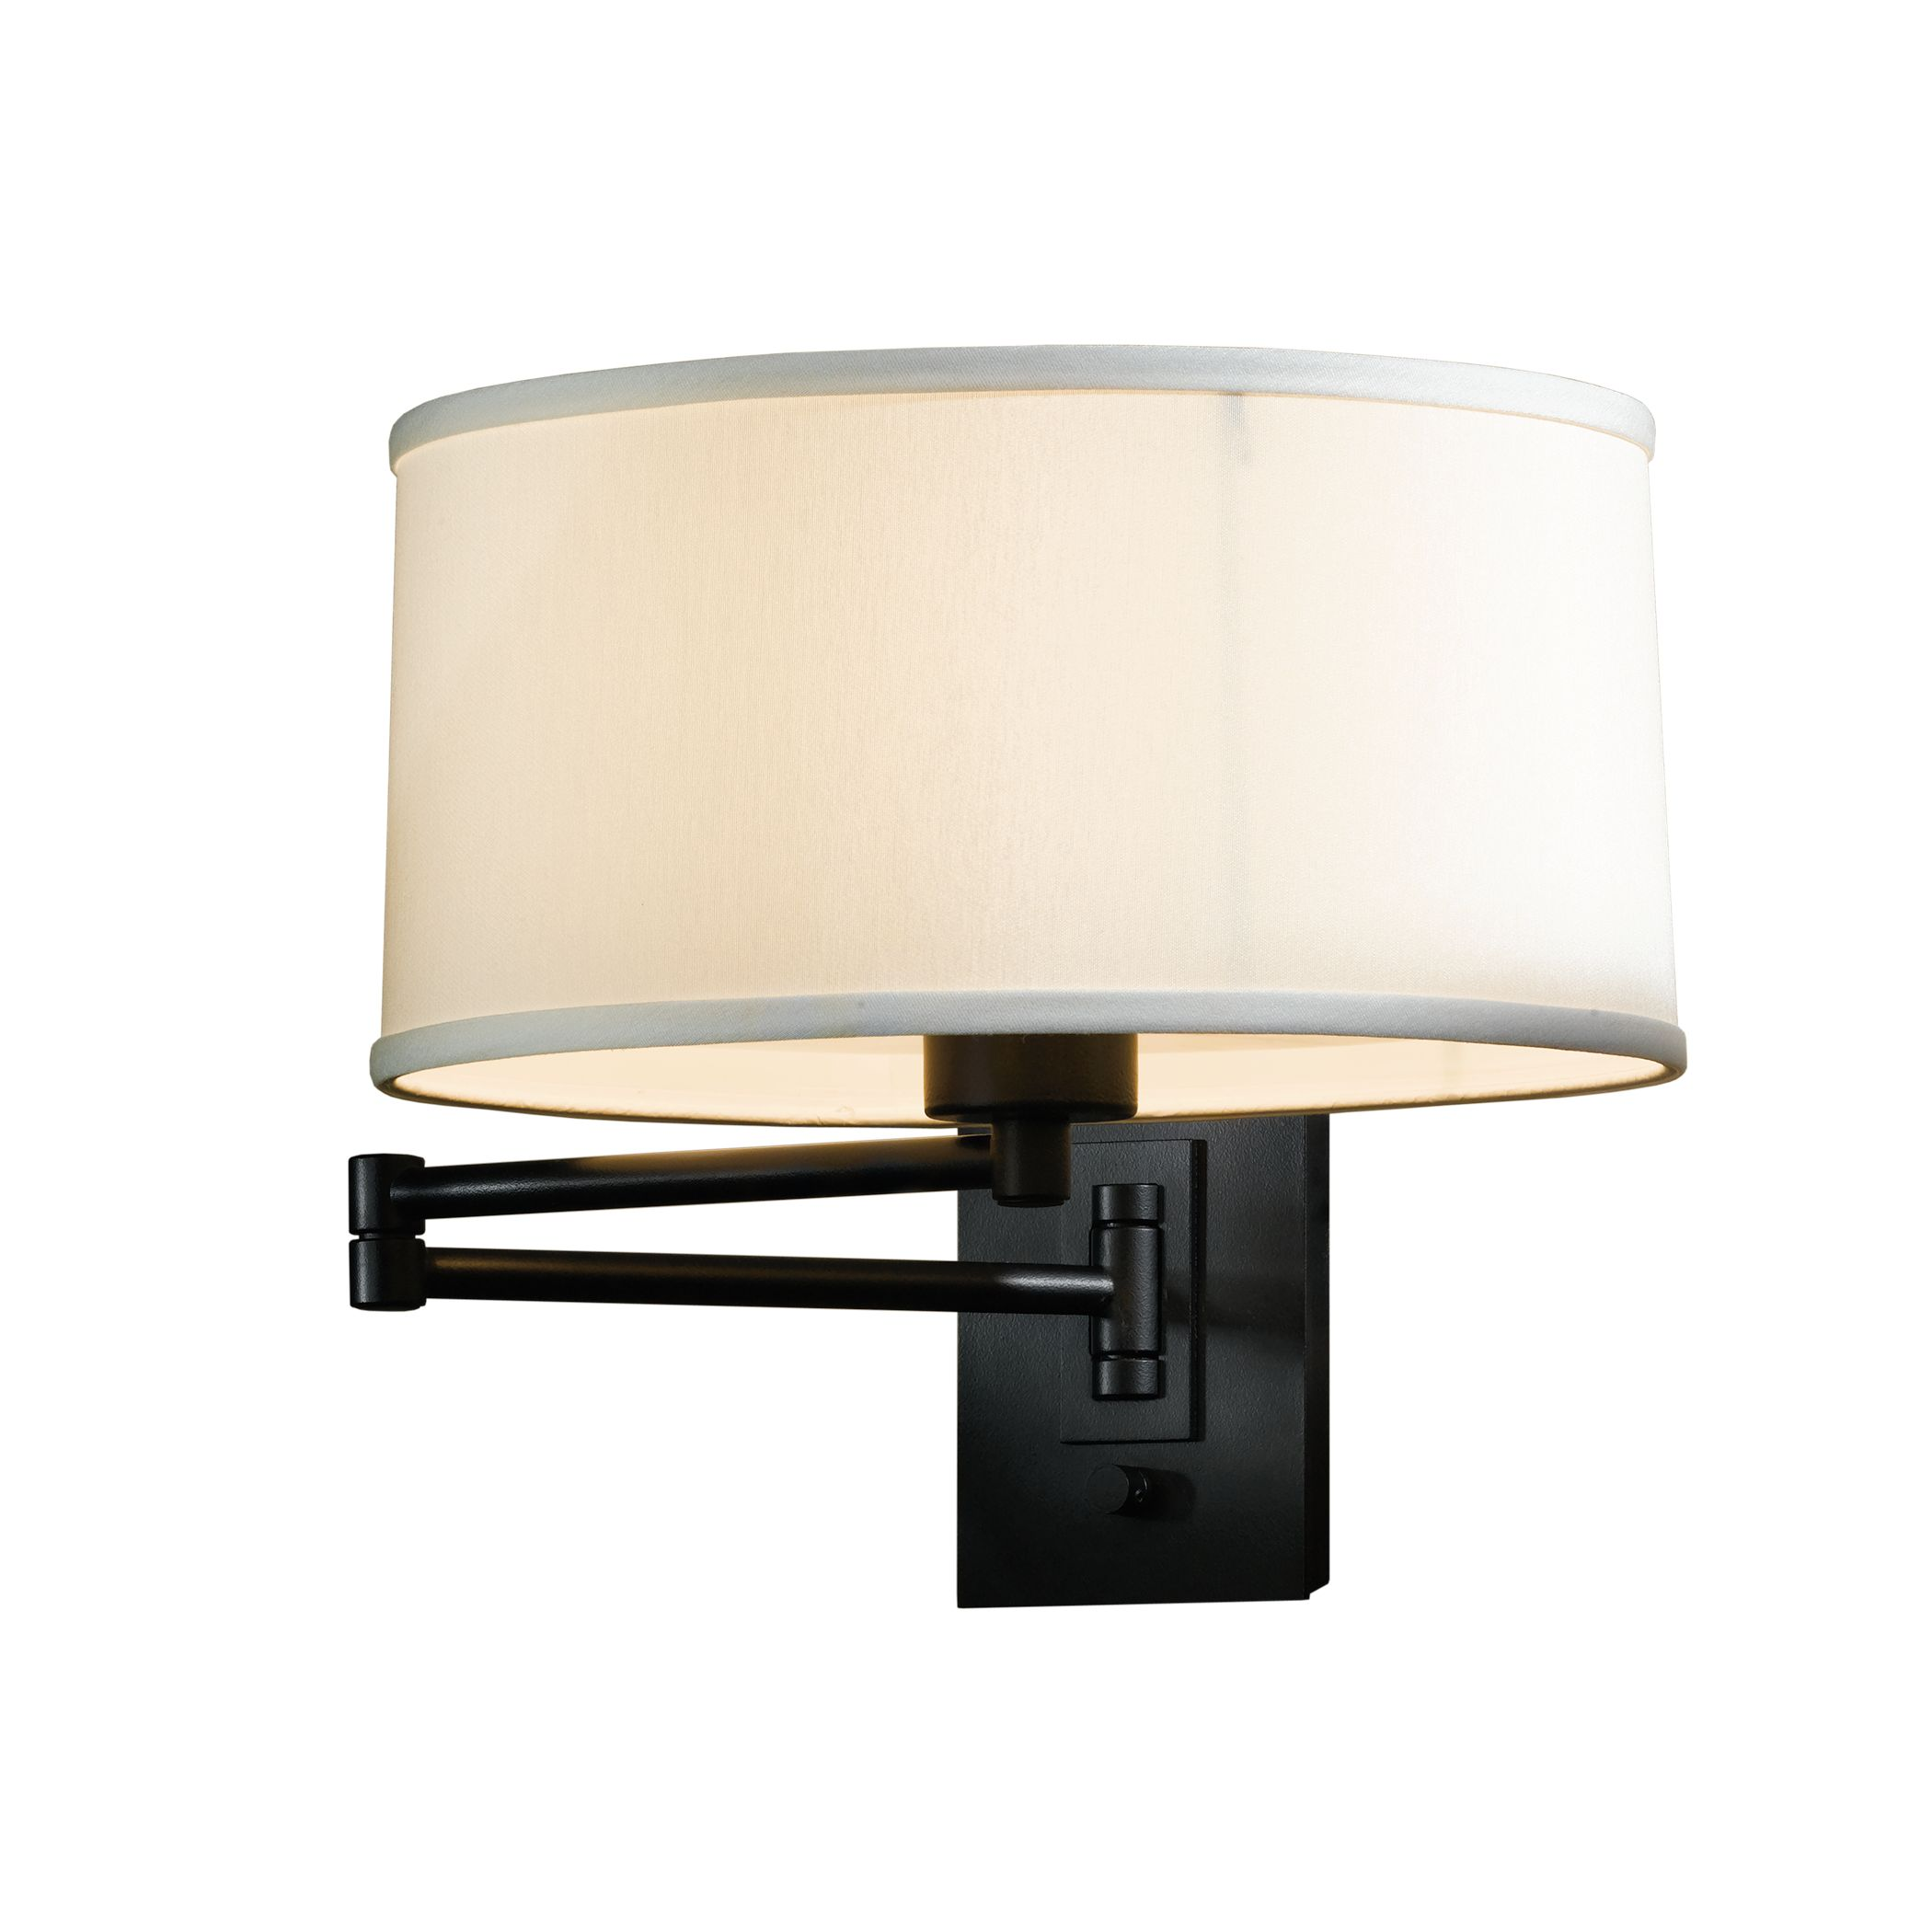 Hubbardton Forge New Town Sconce: Forged Leaf And Stem Sconce